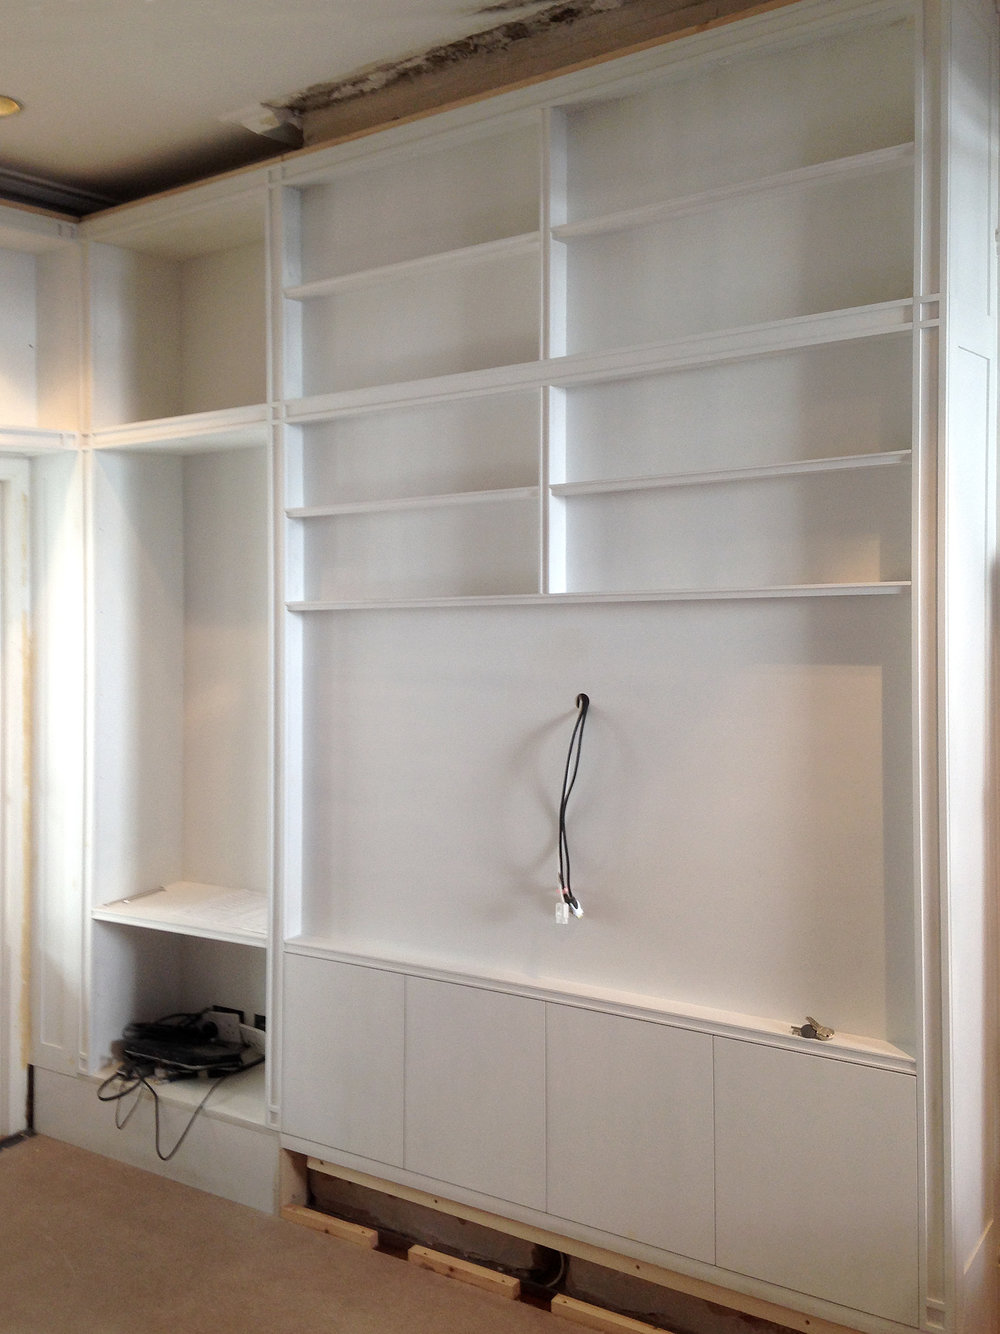 Built-in library with traditional detailing, primed & ready for restored cornice & hand-painted finish  Fixed shelving for varying book heights and TV alcove, commissioned for a private client in London.